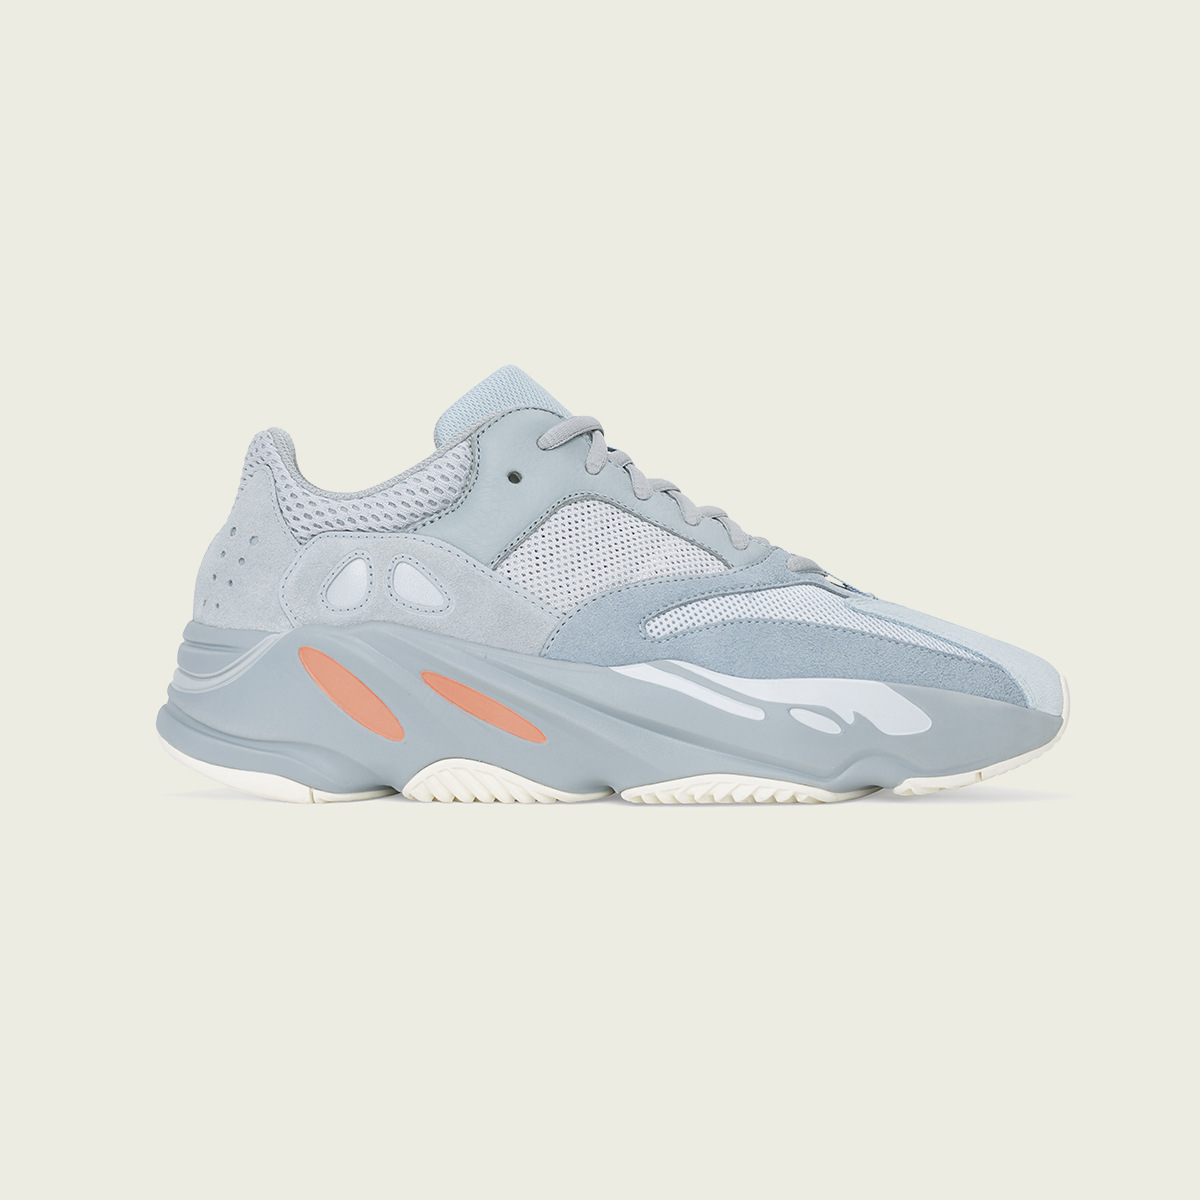 adidas YEEZY BOOST 700 'Inertia' | SOLD-OUT